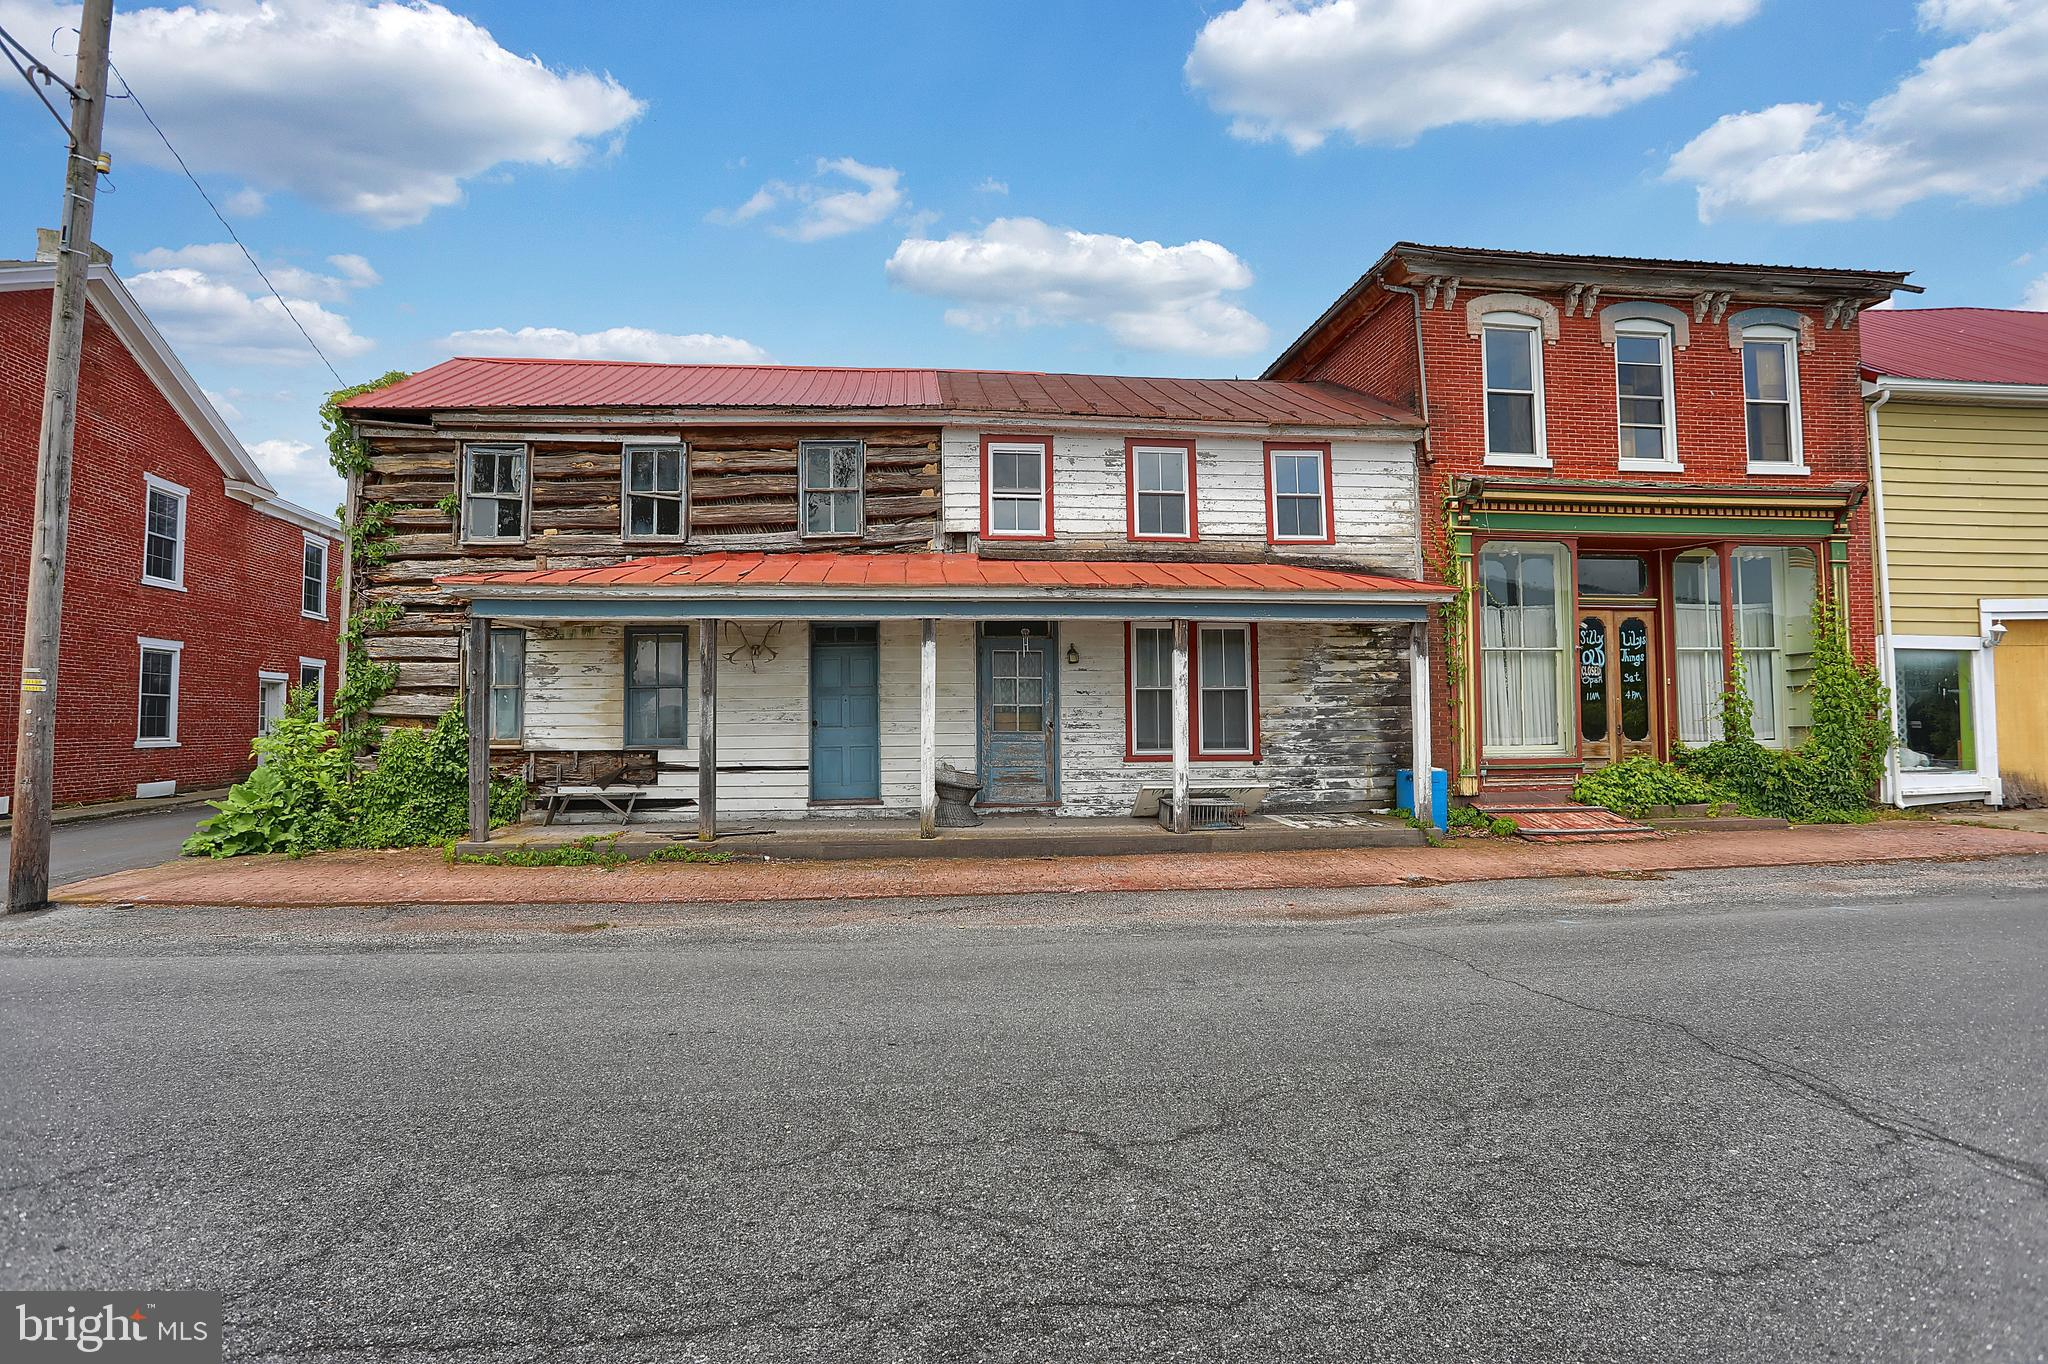 204 N FRONT STREET, LIVERPOOL, PA 17045